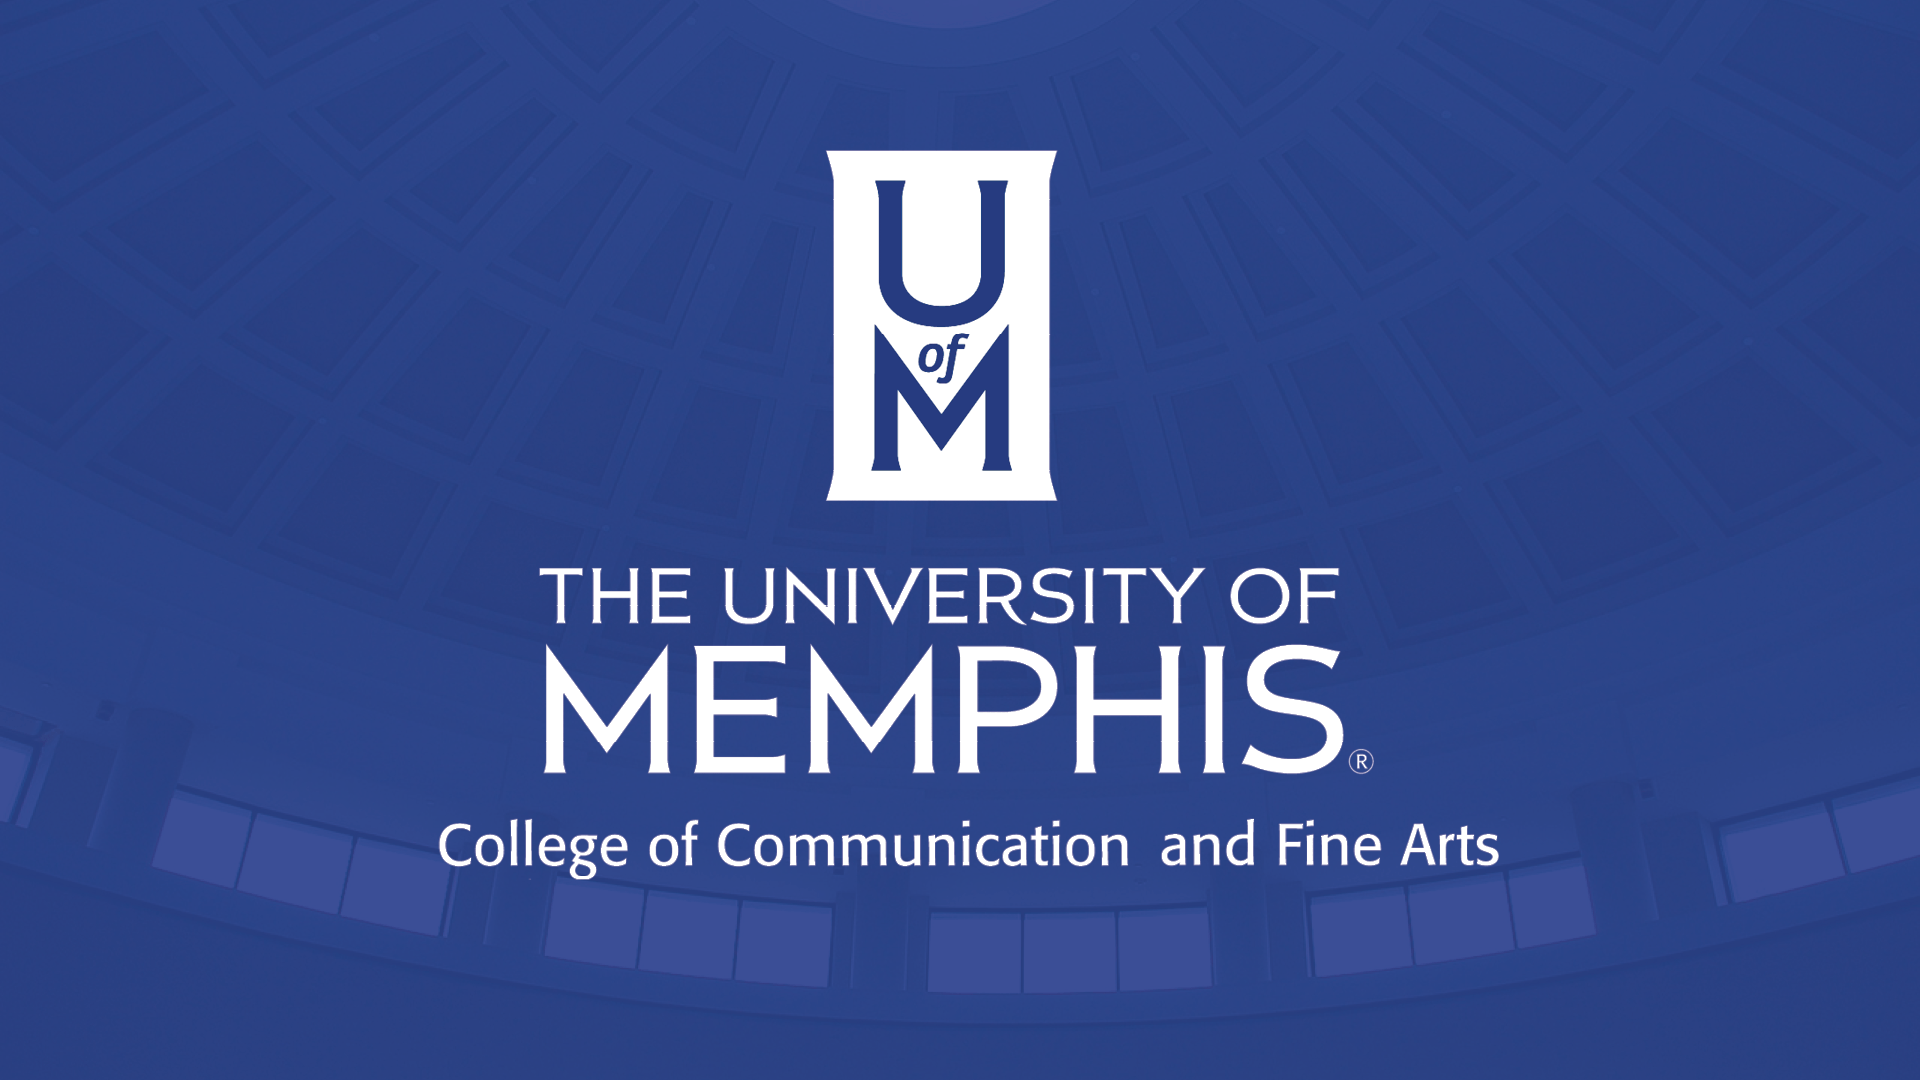 UofM College of Communication and Fine Arts